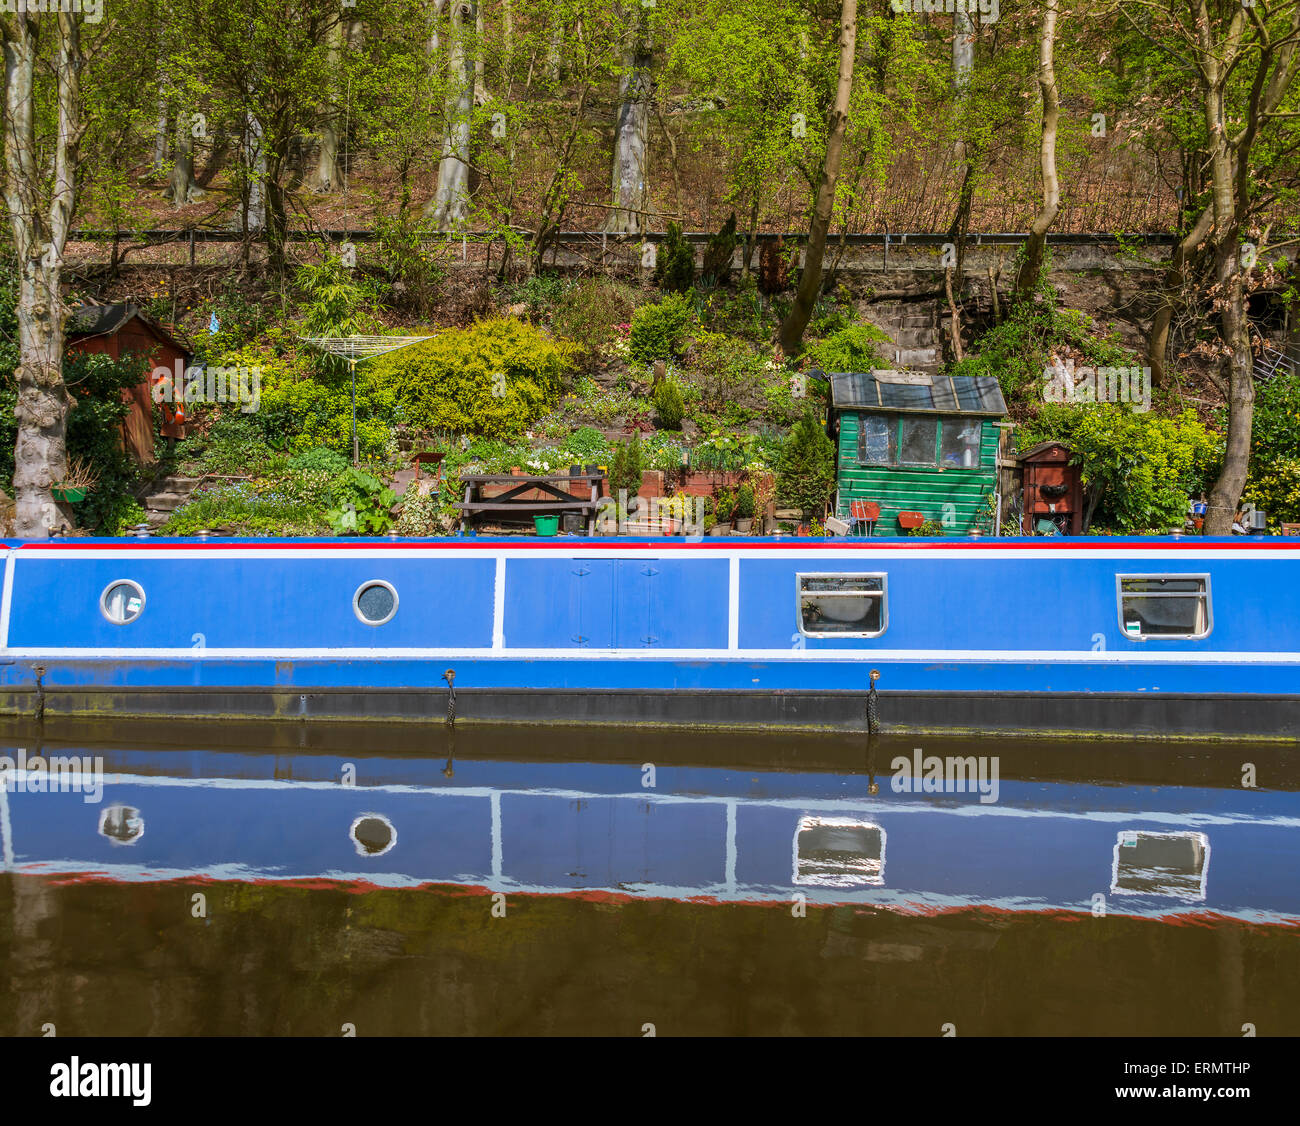 A narrowboat moored alongside some untidy garden items - Stock Image